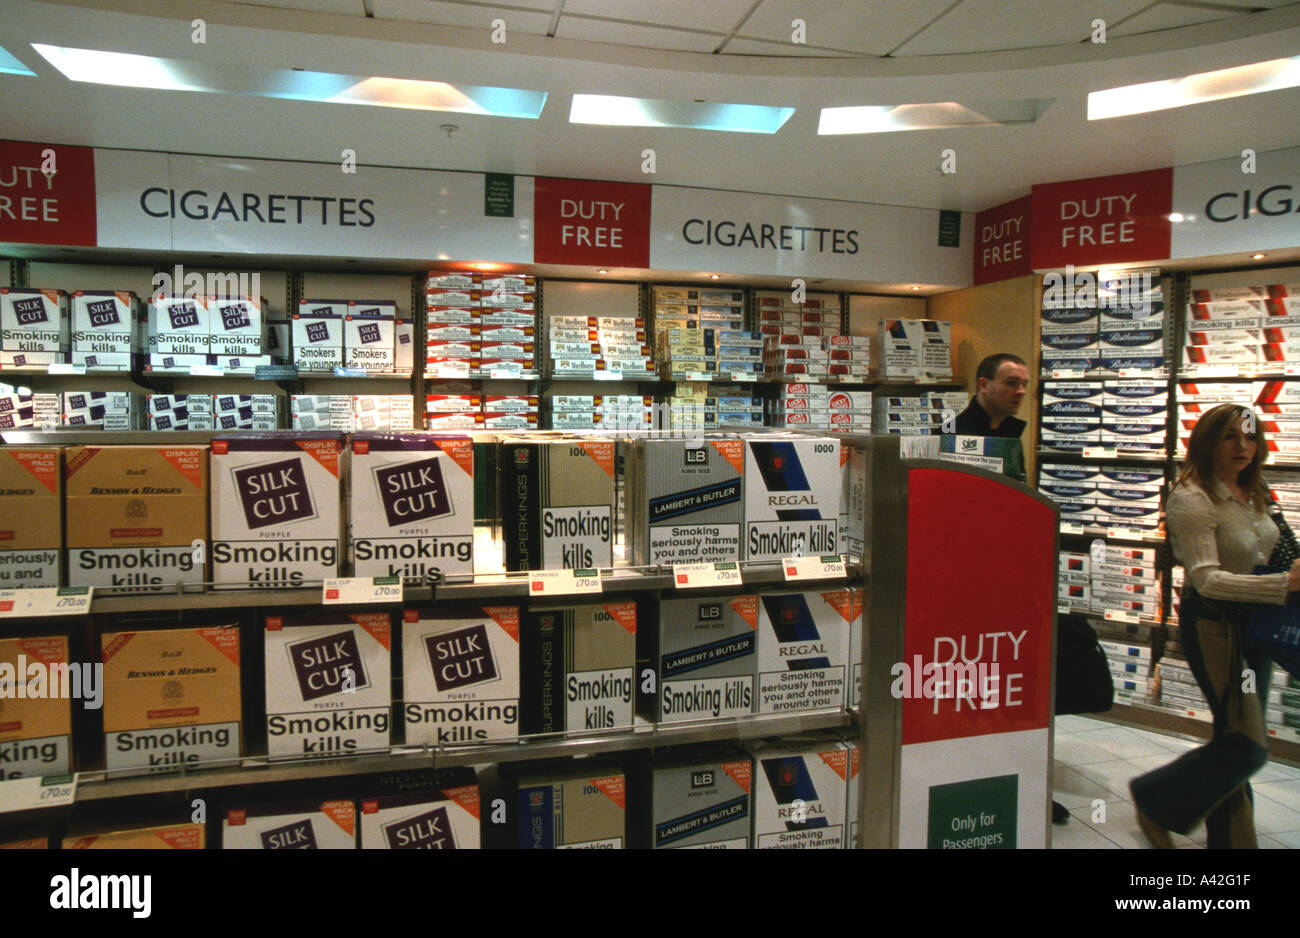 Where can i buy Kent cigarettes in USA